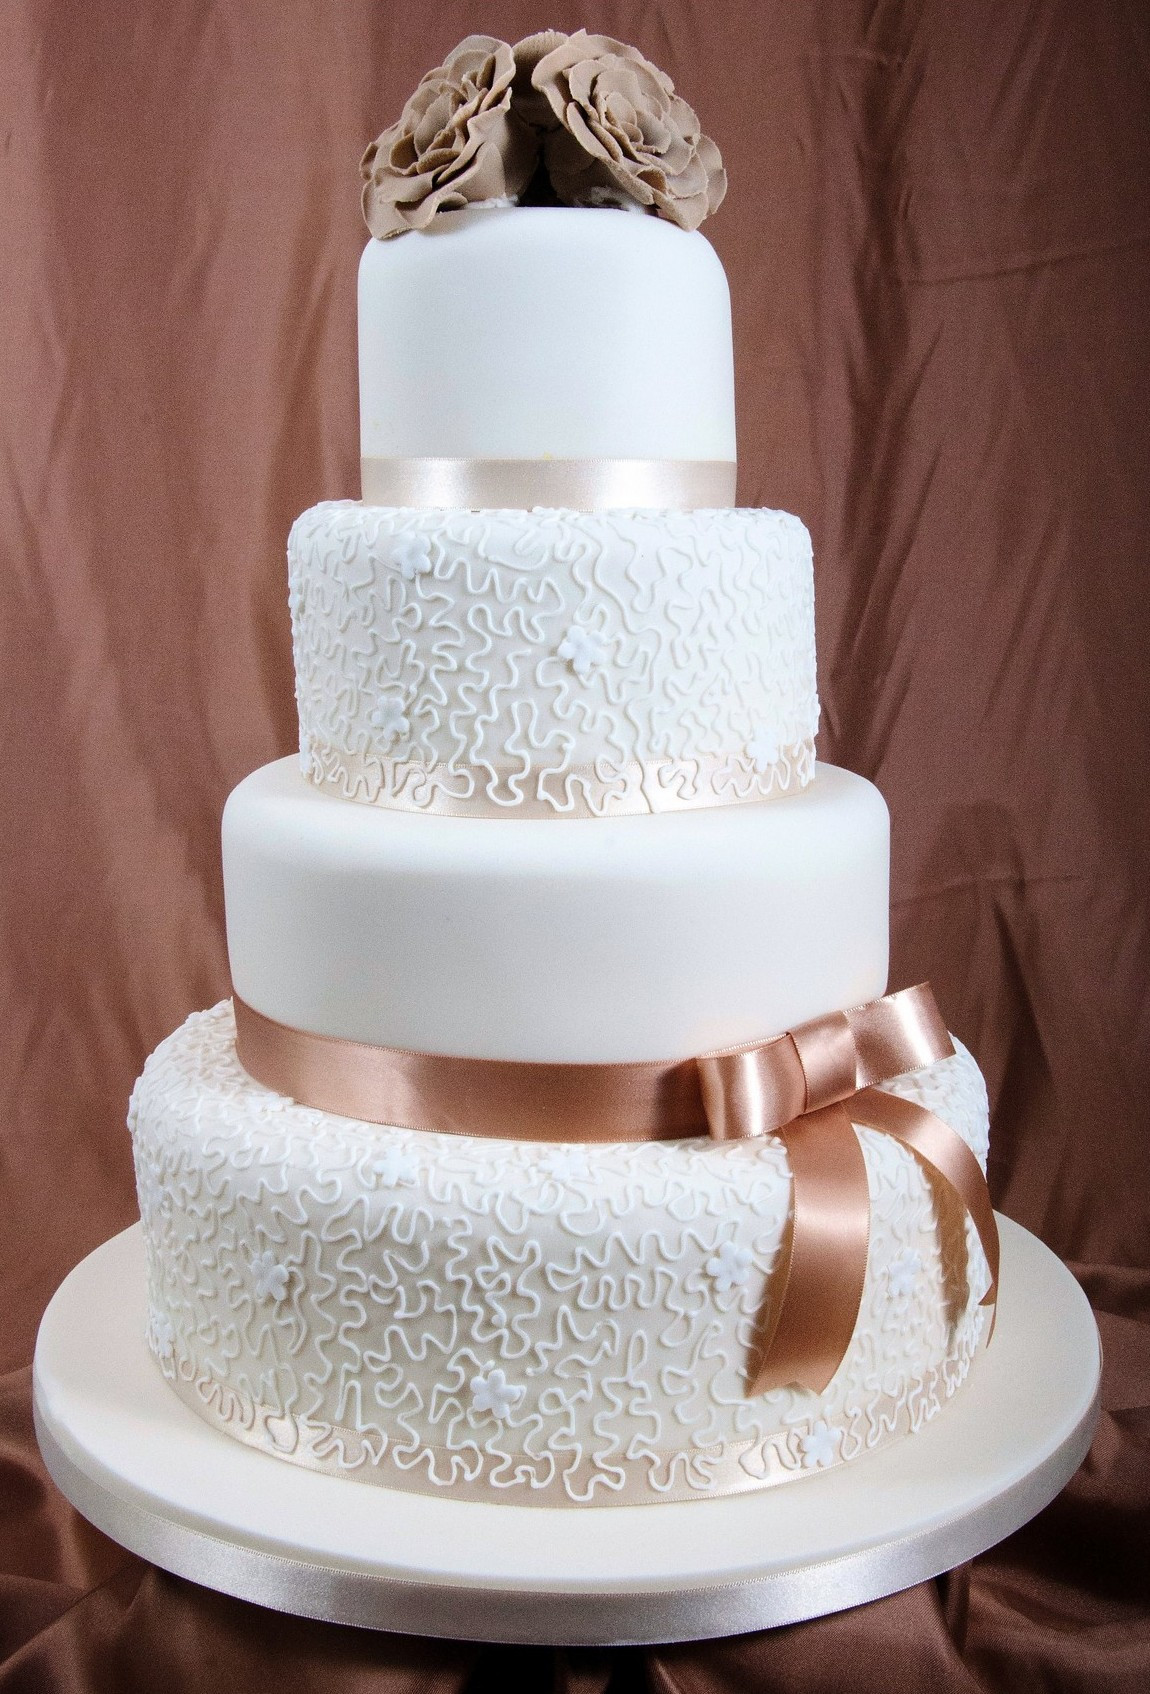 Wedding Cakes Design Ideas  Wedding Cake A Gallery of Cakes by Shelly WeddingDates